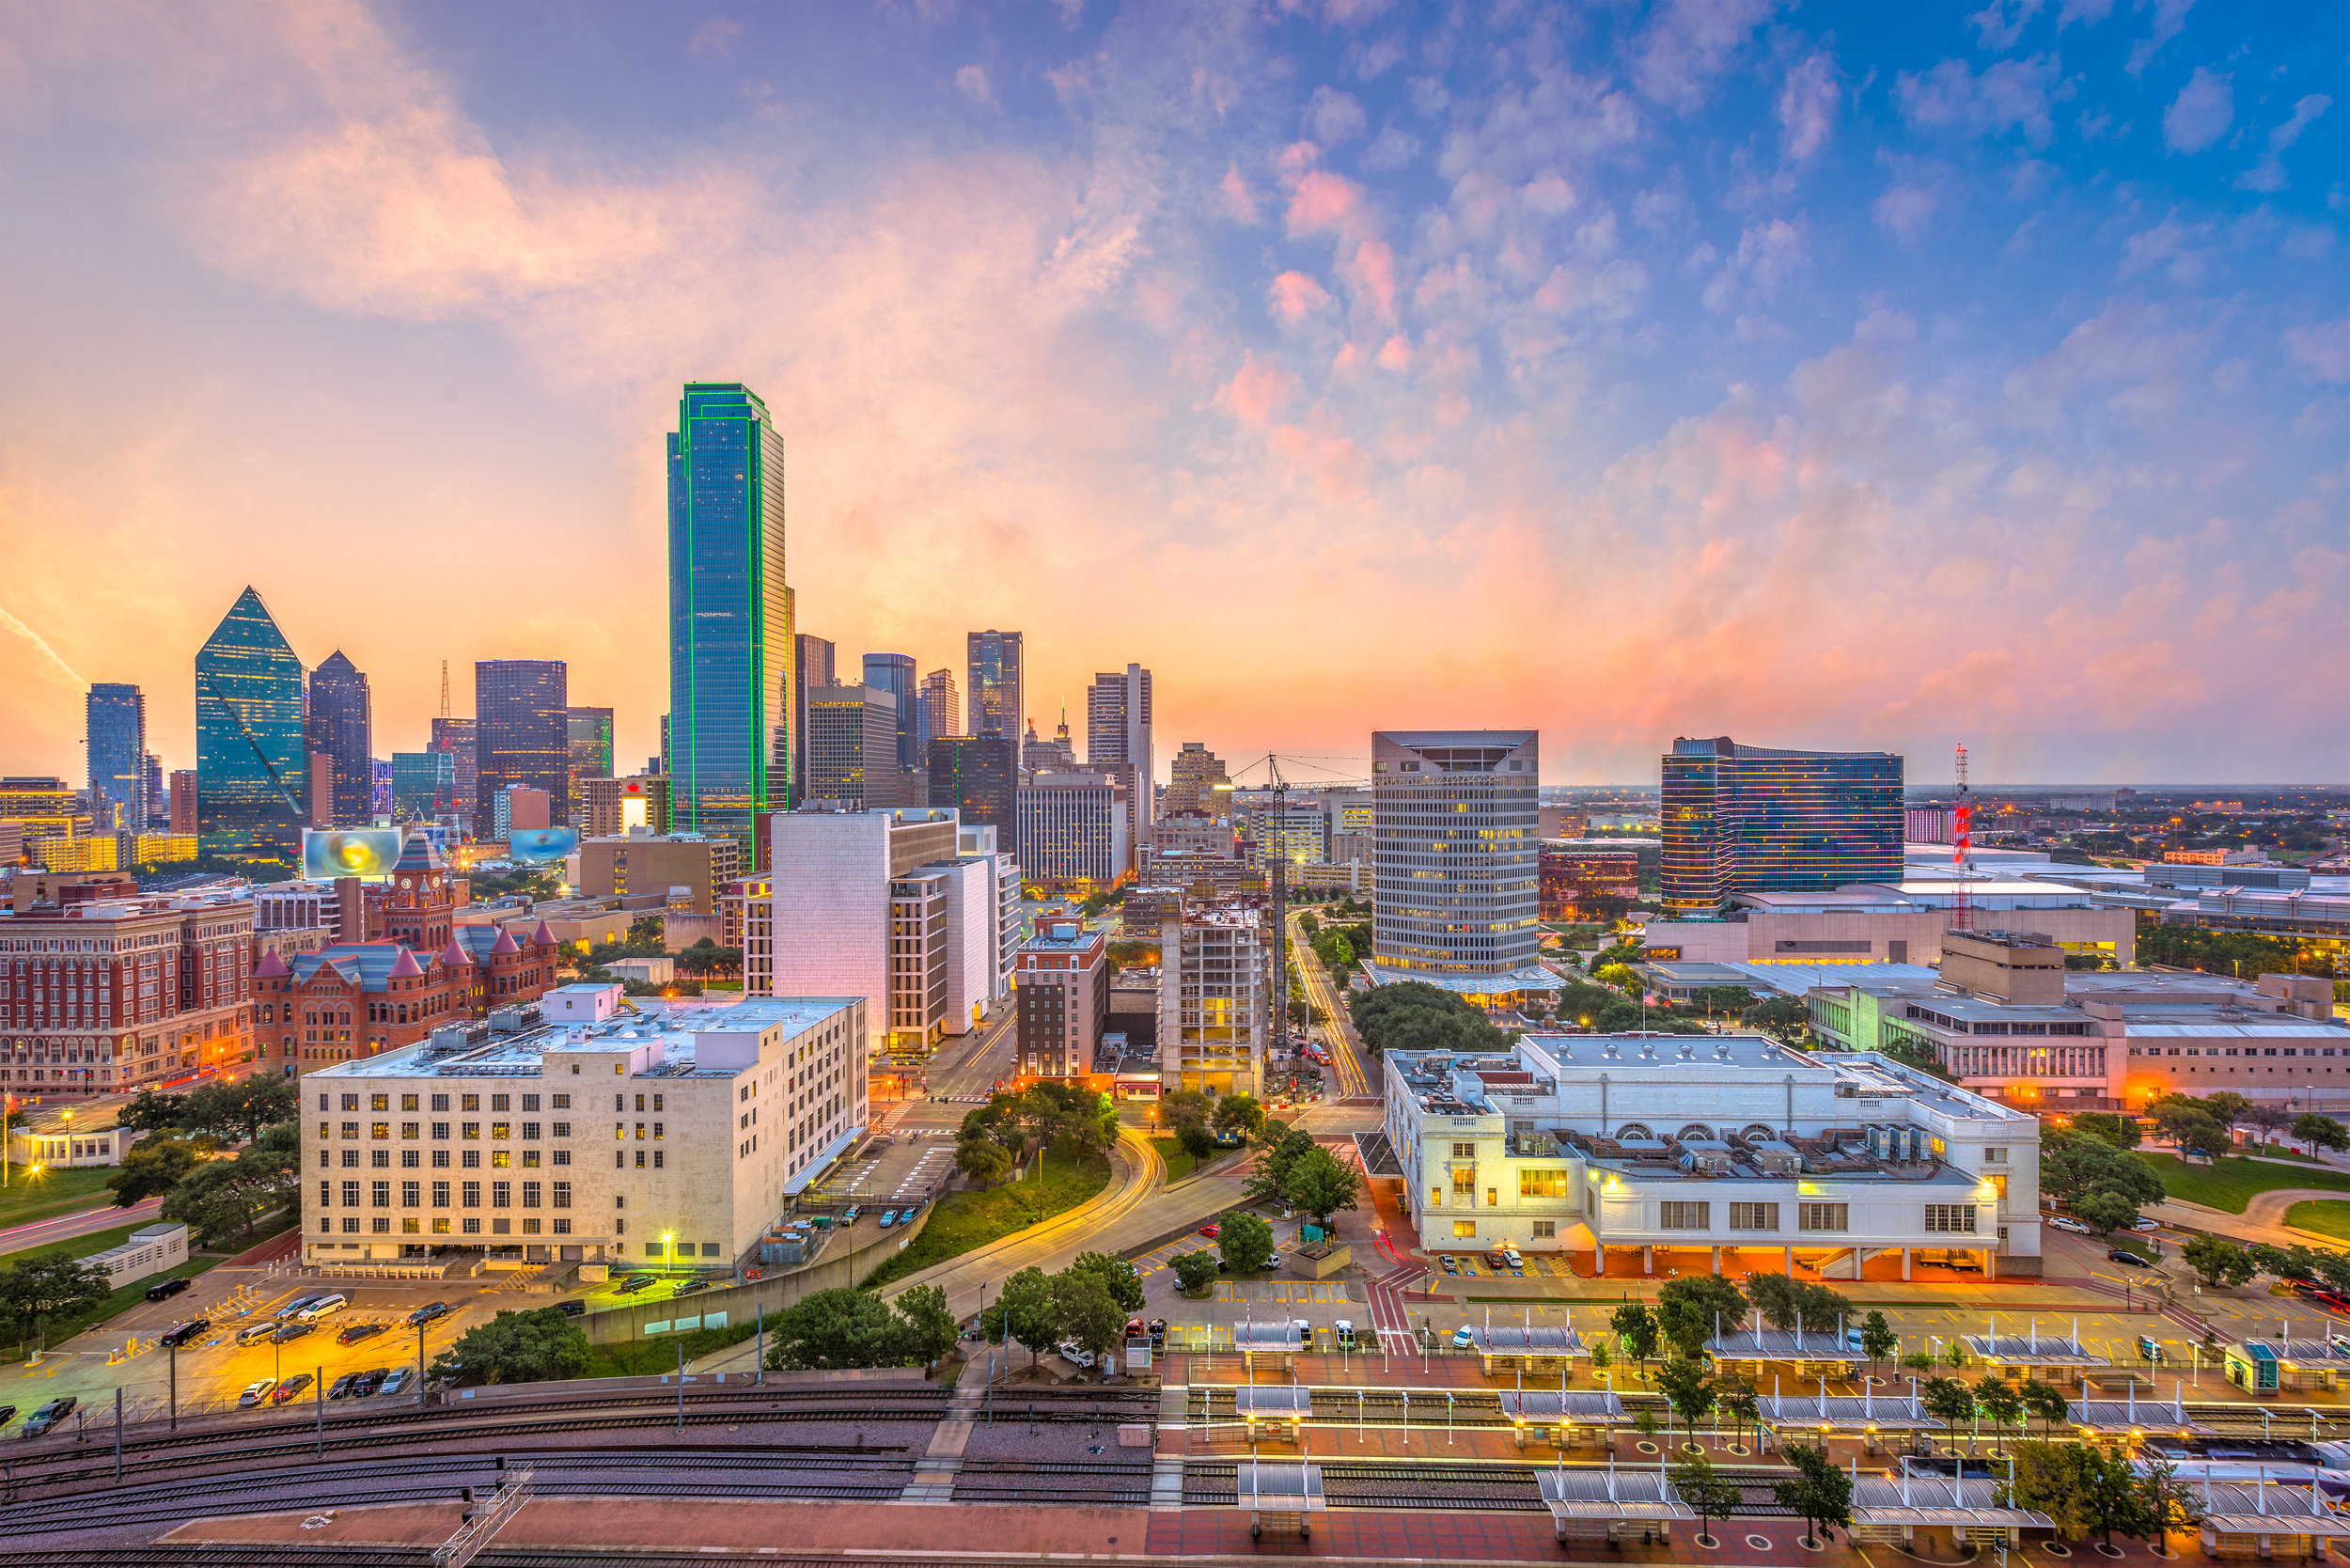 Dallas - You may not associate Texas with rail transportation, but Dallas is an emerging intermodal market that's home to several major distribution centers. Loads typically come out of BSNF - Alliance and UP Mesquite.